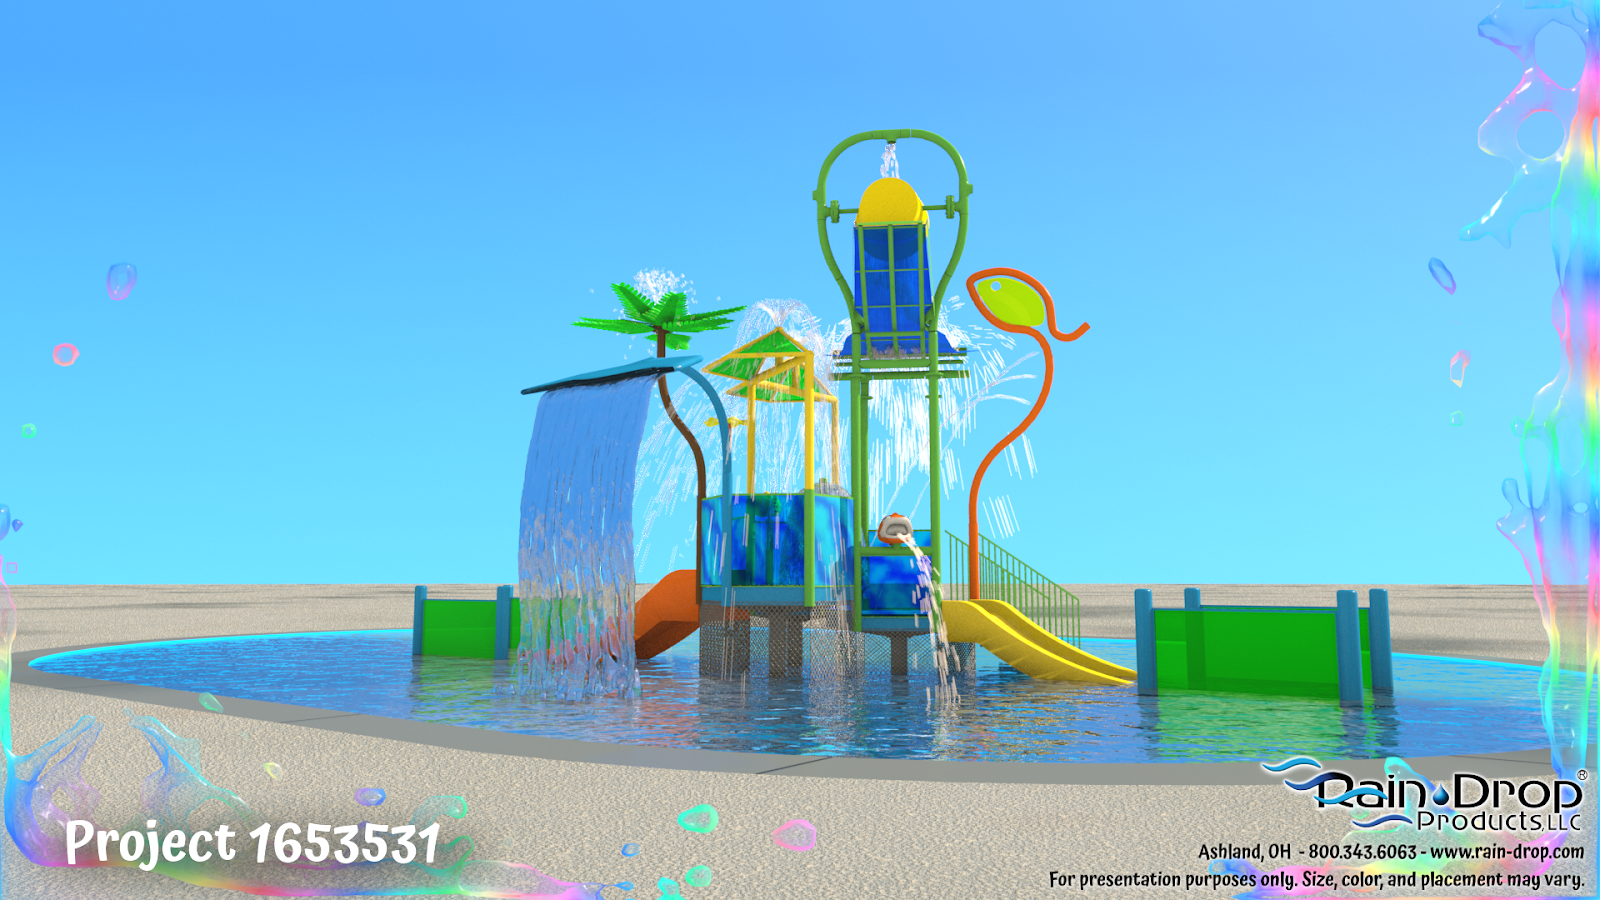 Splash Zone Childrens Waterplay Rendering